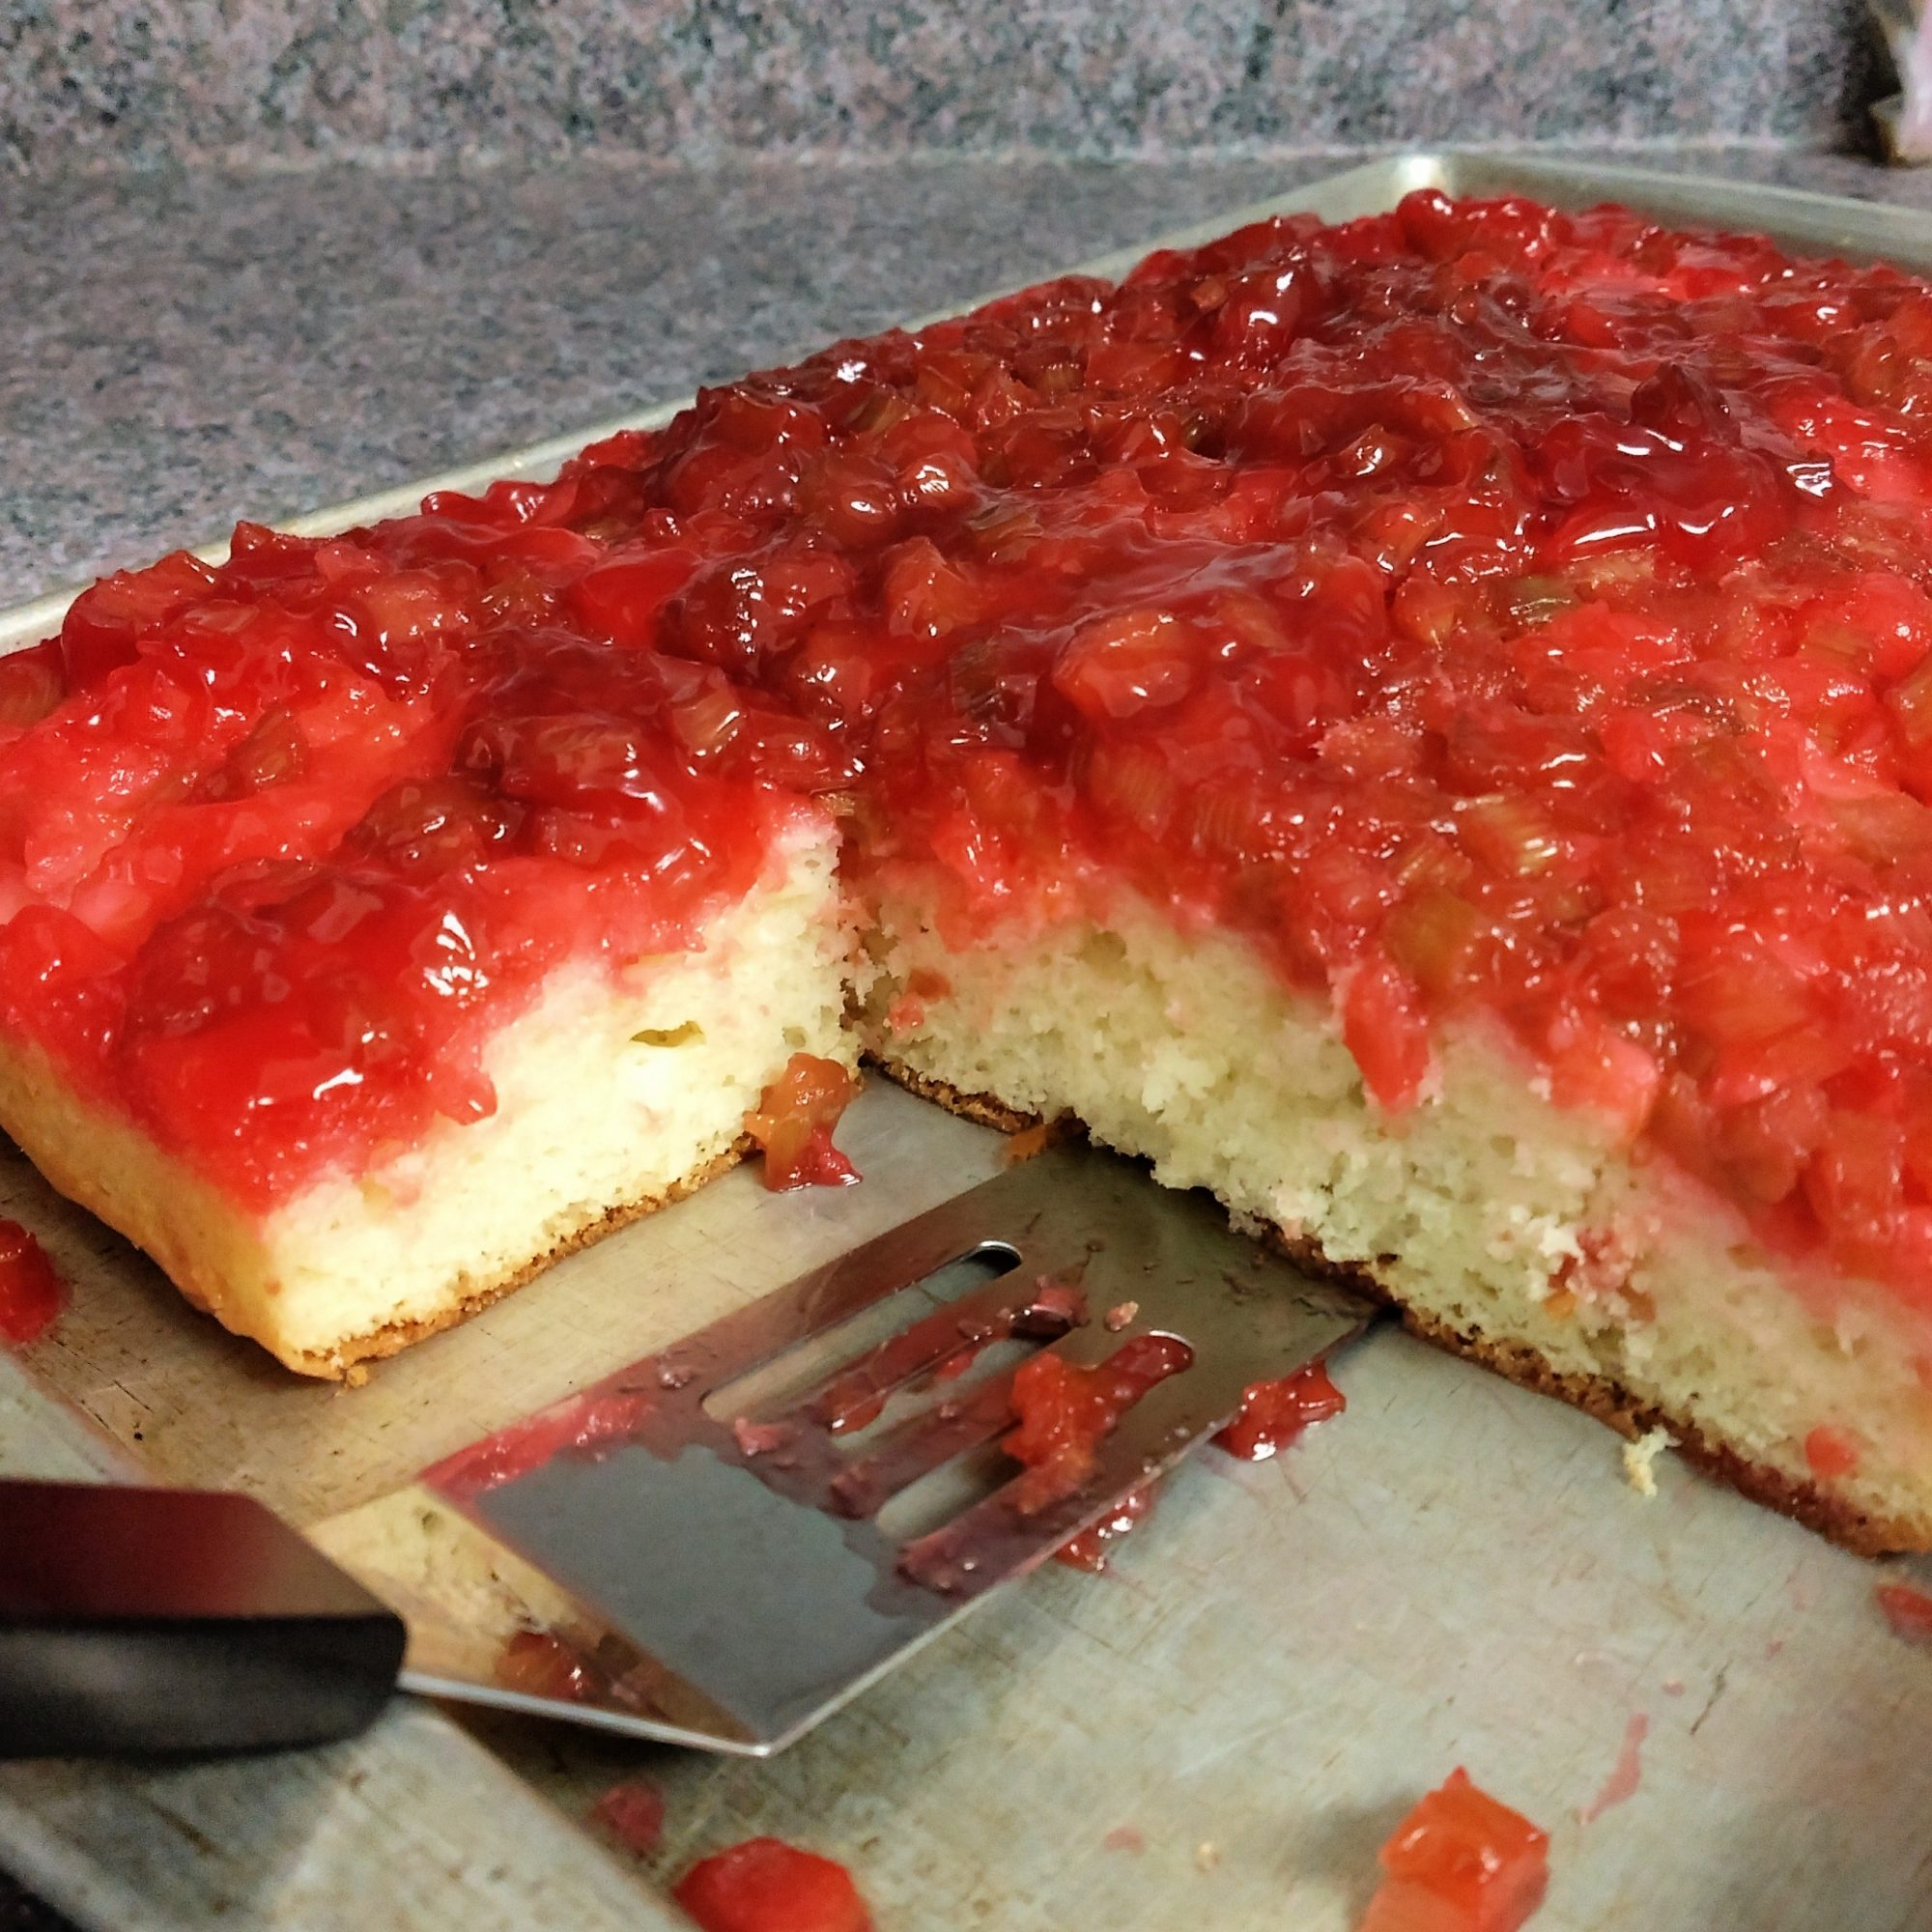 side view of upside down rhubarb cake in a baking pan